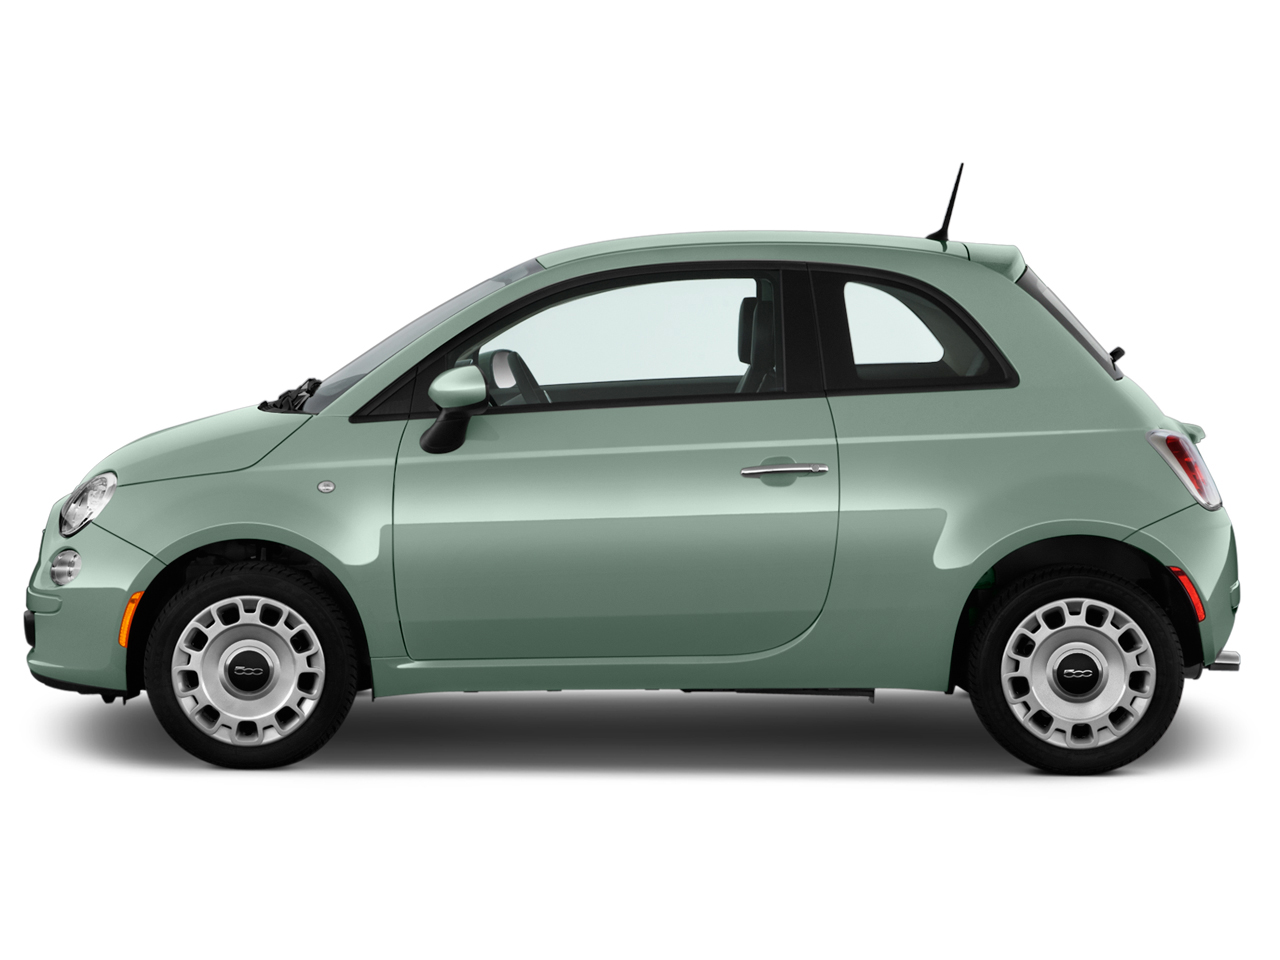 fiat 500 2018 convertible 1 4l pop in egypt new car prices specs reviews photos yallamotor. Black Bedroom Furniture Sets. Home Design Ideas